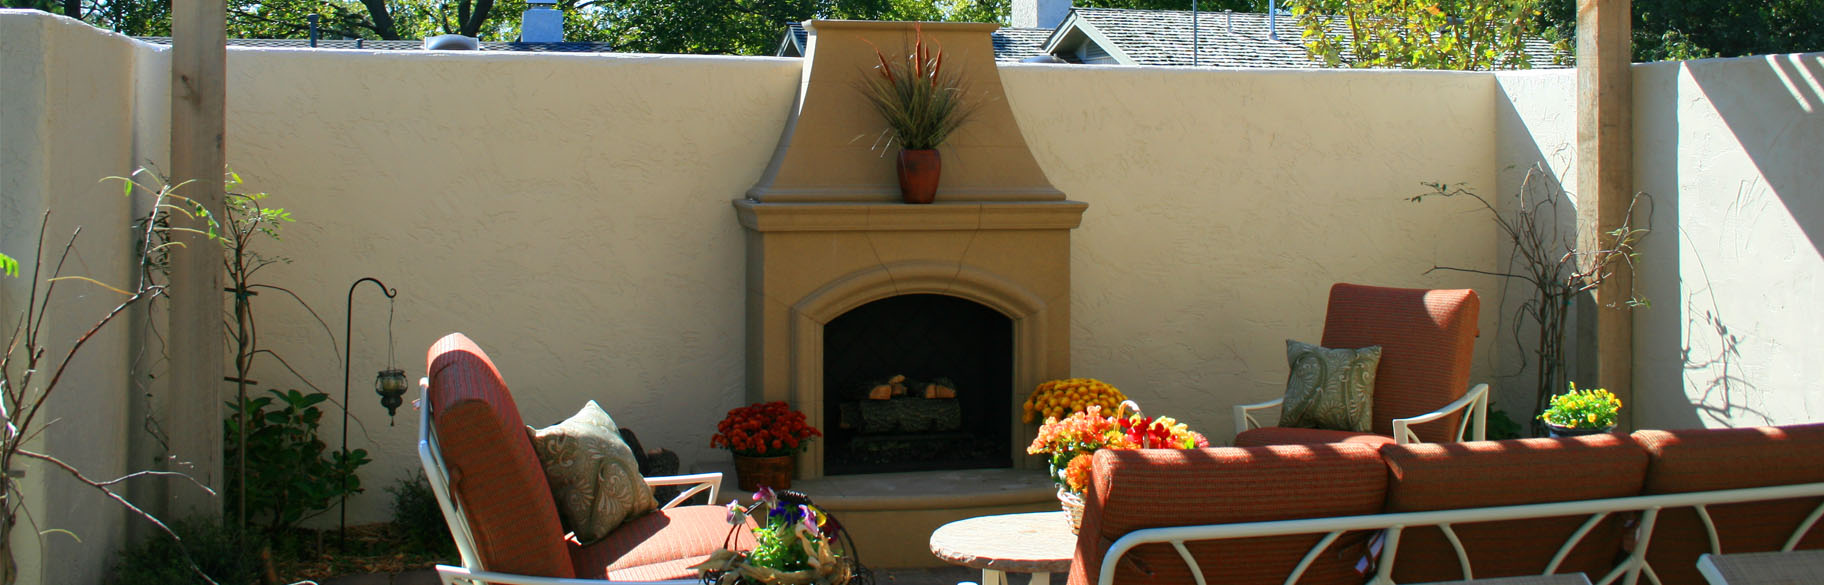 Fireplaces & Pits 2